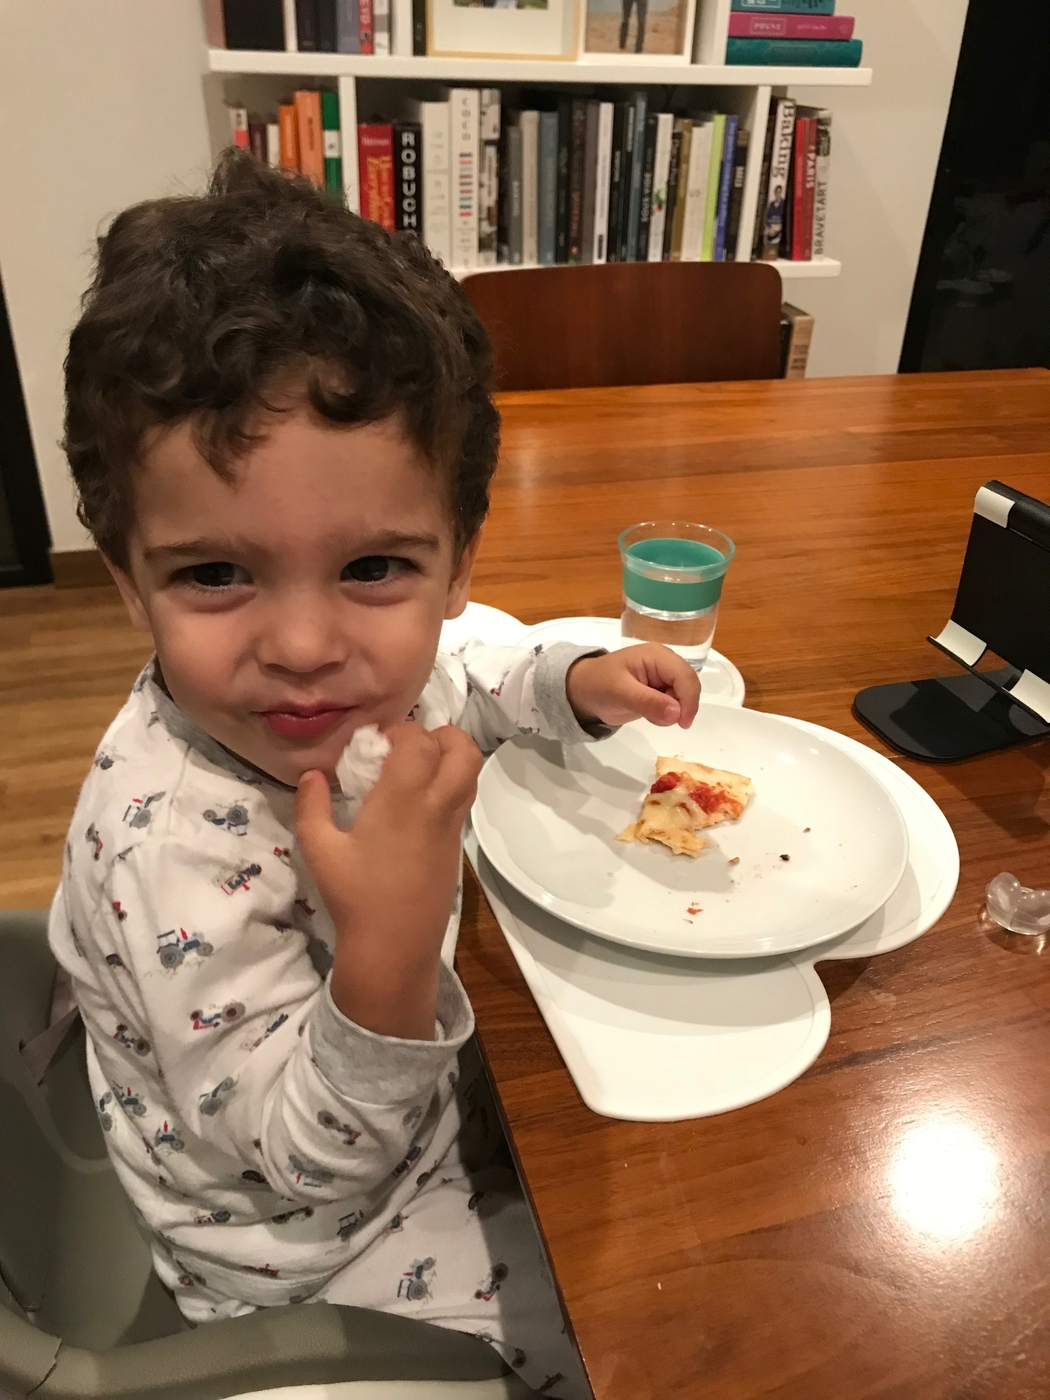 after the birth of my children – and tied with my wedding – this is the happiest day of my life. shared my first pizza with robie completely out of his request.